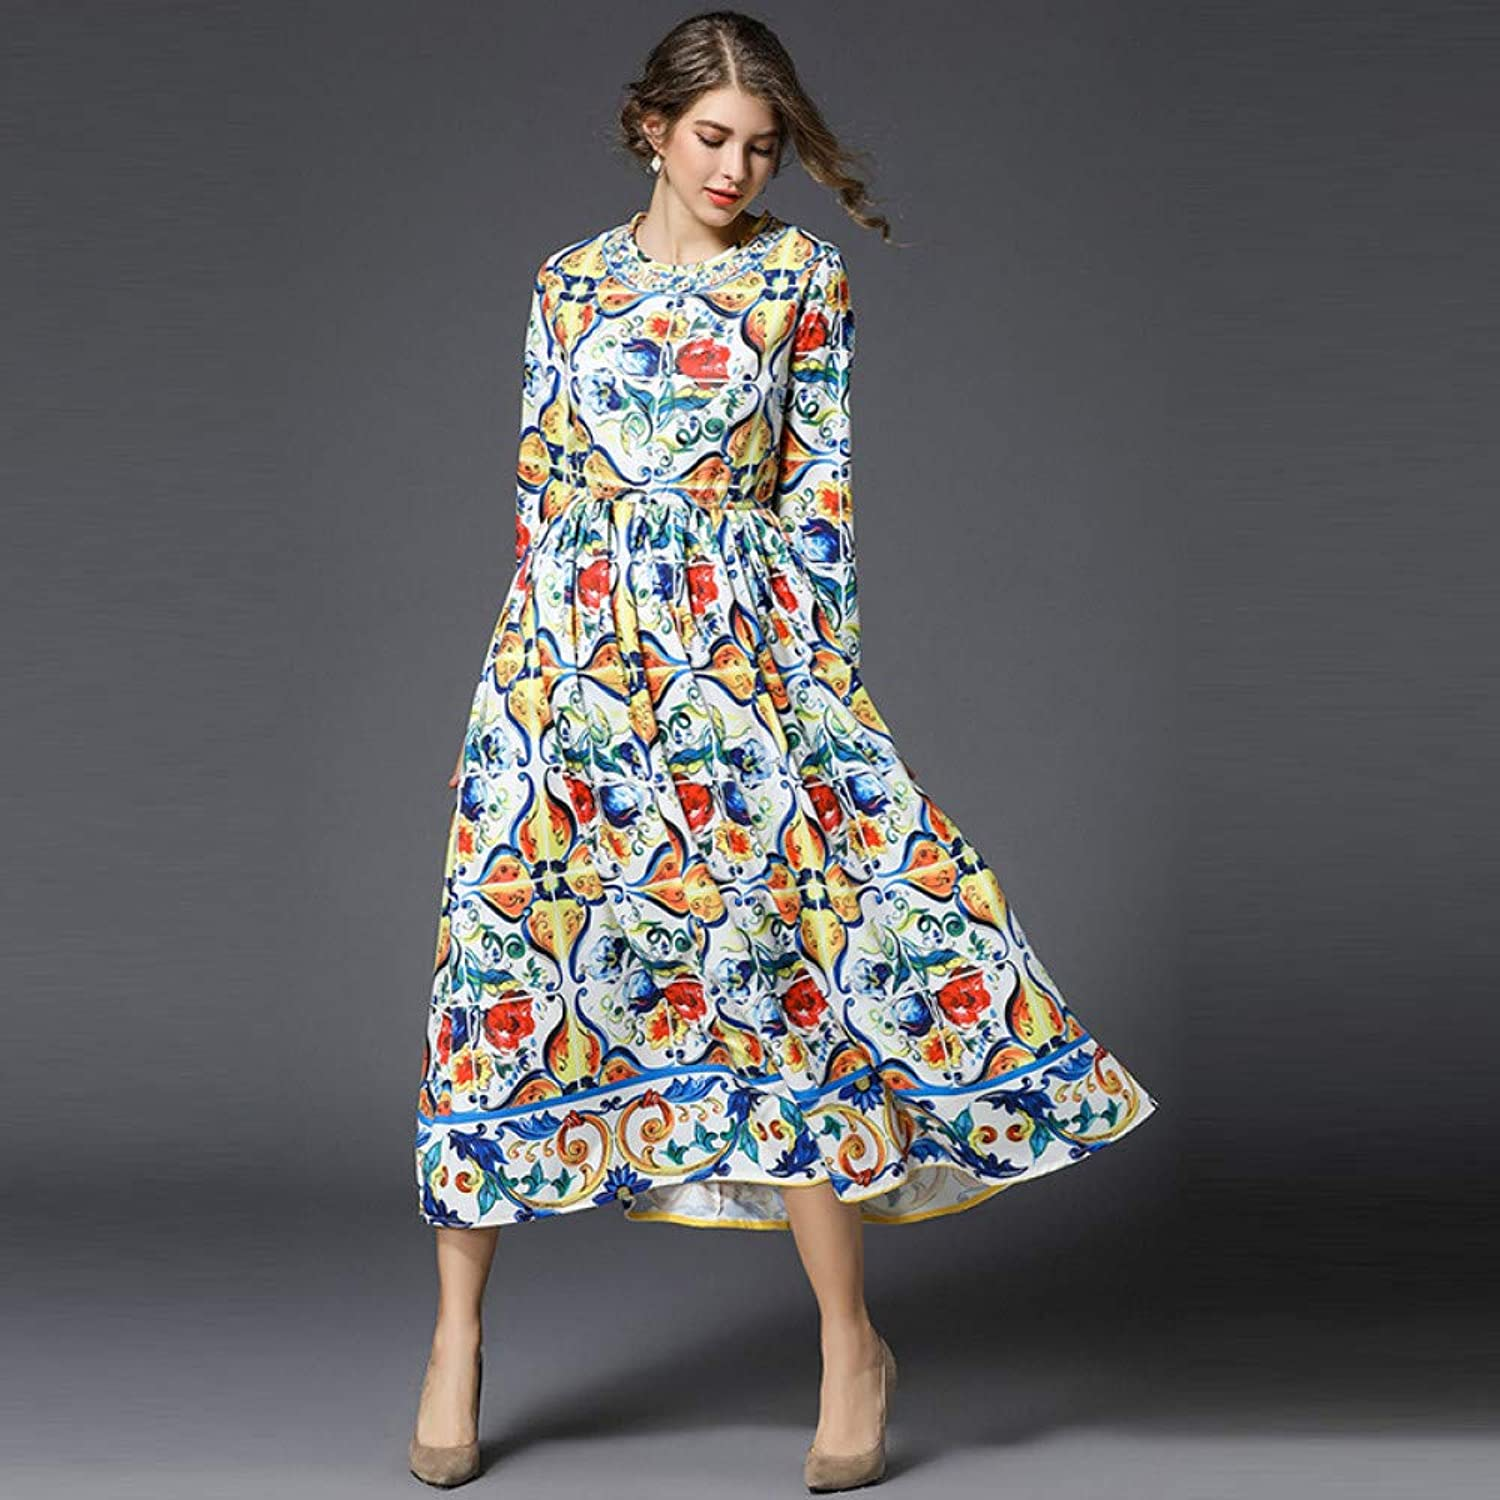 Cxlyq Dresses Women's Autumn Retro bluee and White Porcelain Print Large Swing Round Neck Long Sleeve Loose Dress Long Skirt